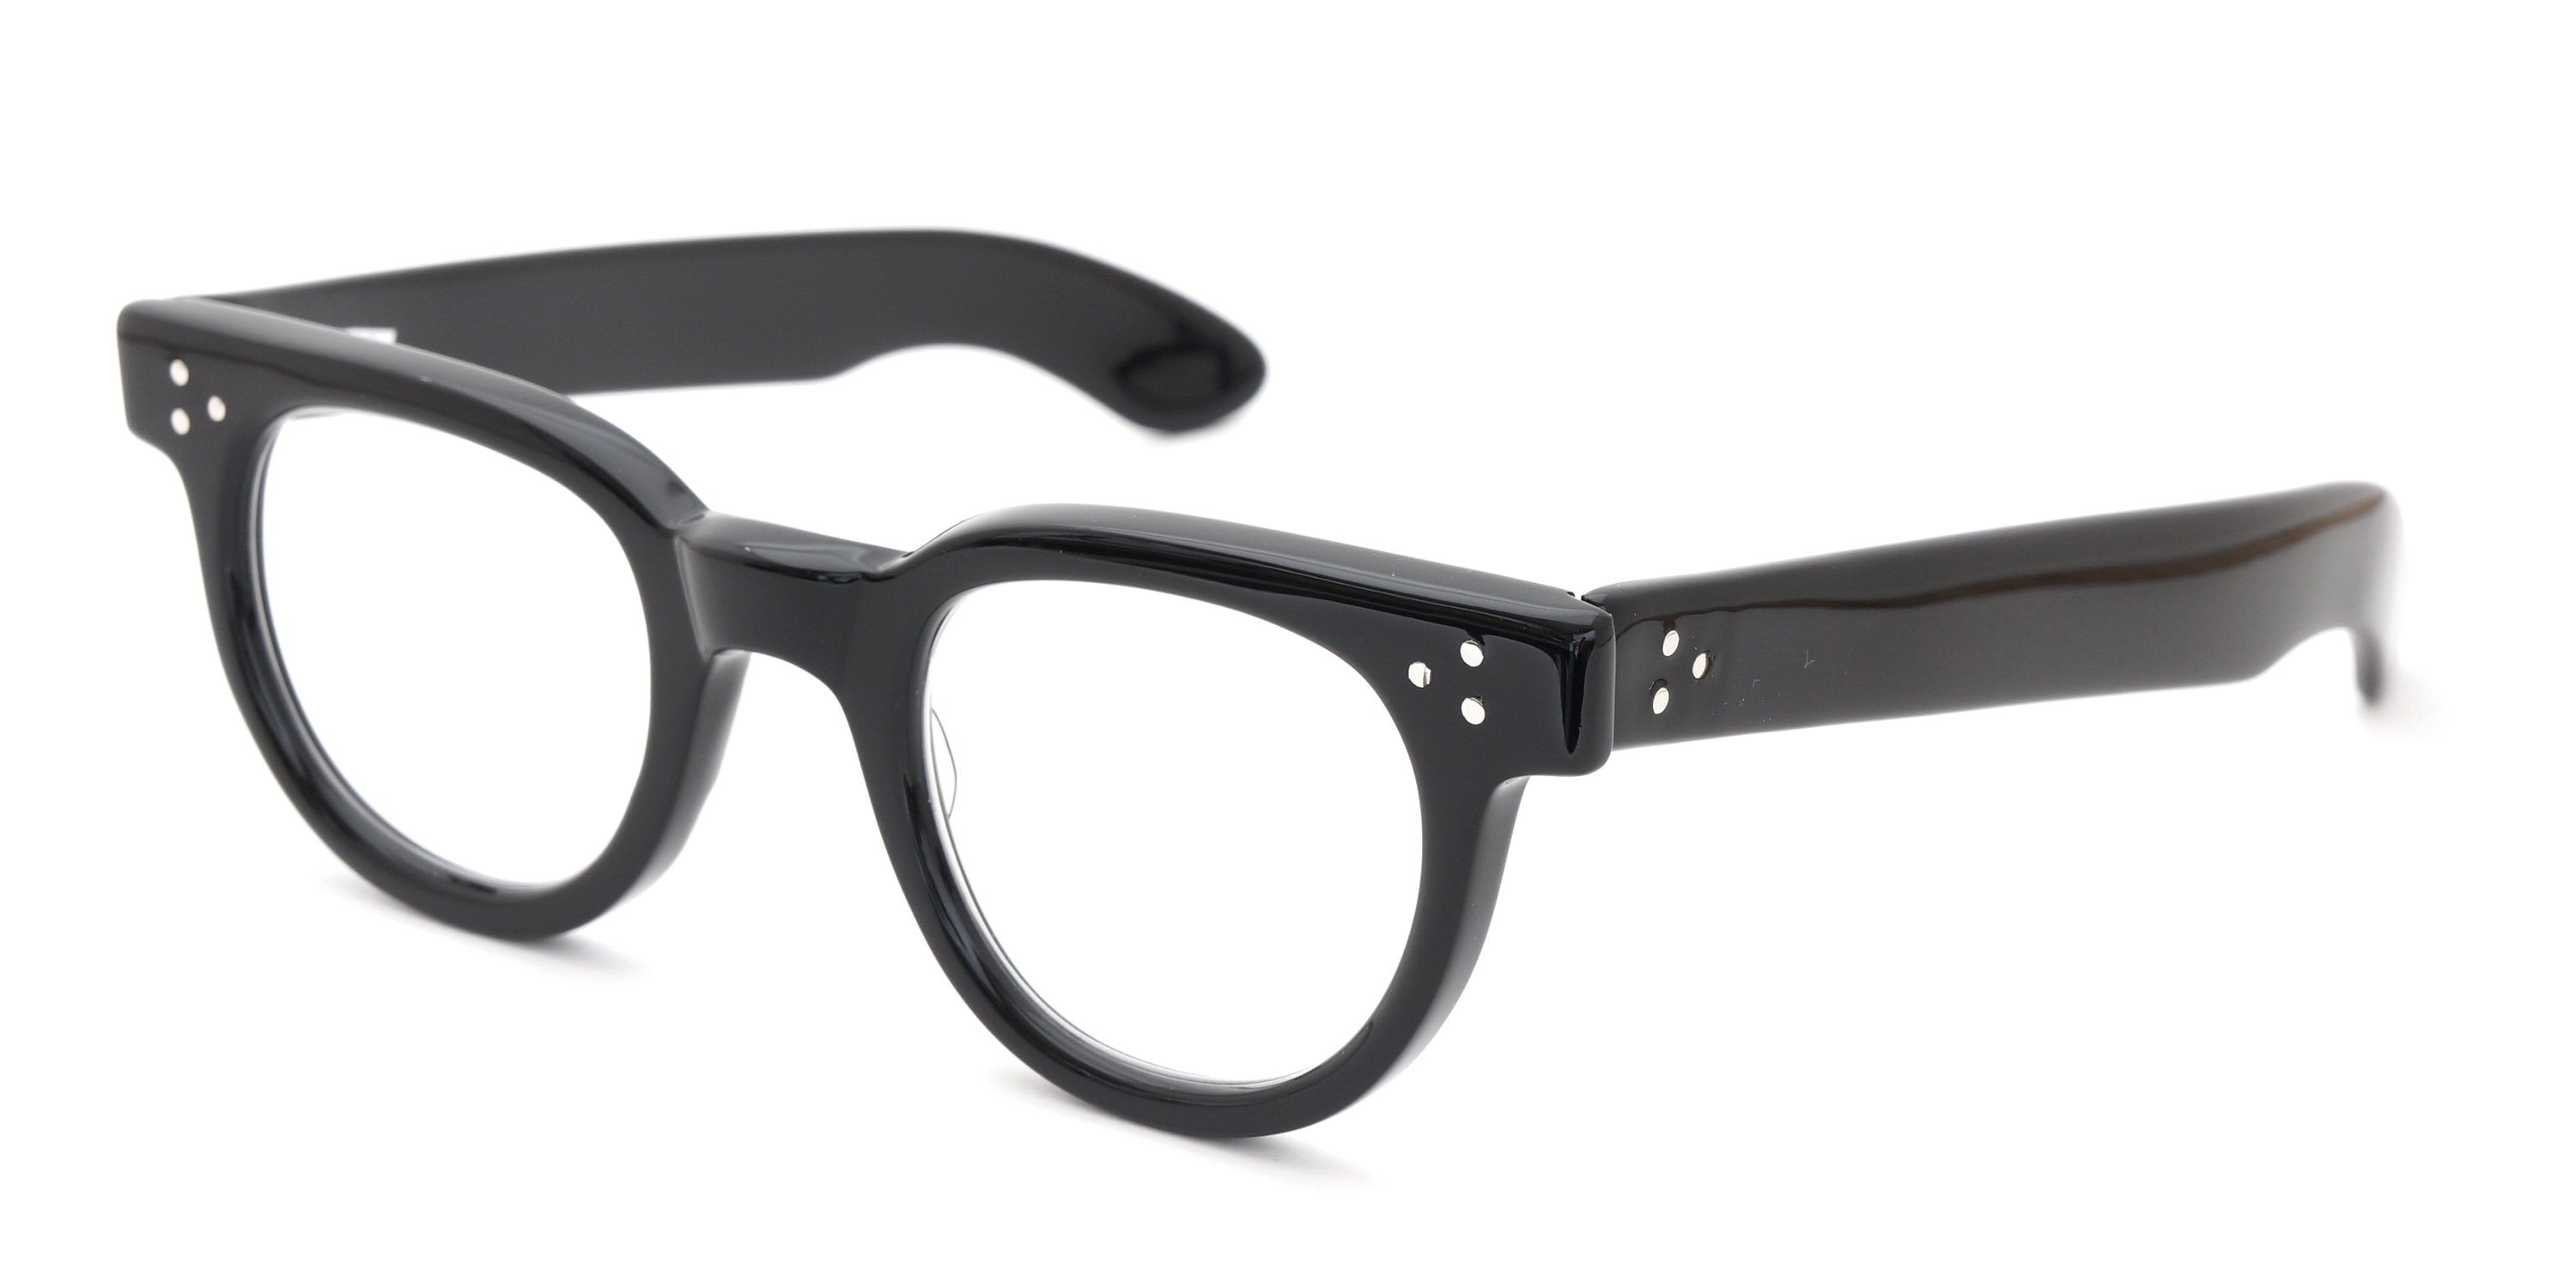 The Spectacle メガネ 1950s-70s TART OPTICAL FDR (FRAME USA) BLACK 44-24 イメージ3